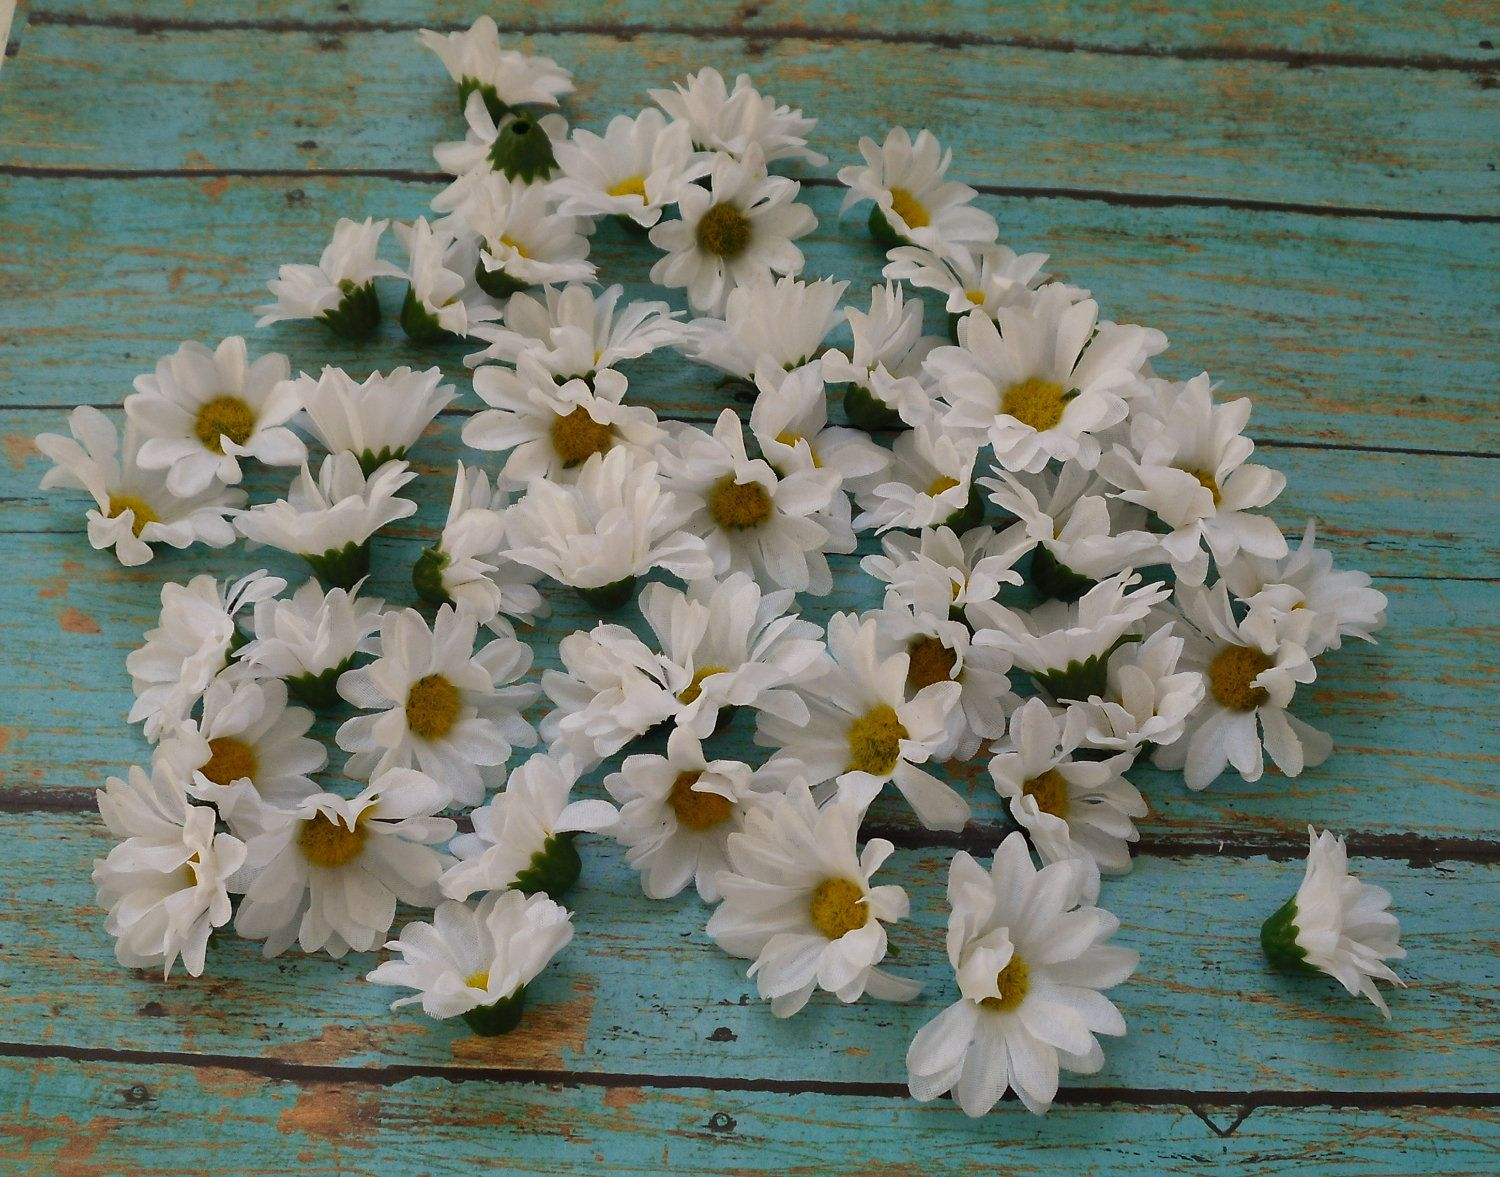 50 small white artificial daisies budget artificial flowers silk silk flowers 50 small artificial daisies in by blissfulsilks 499 mightylinksfo